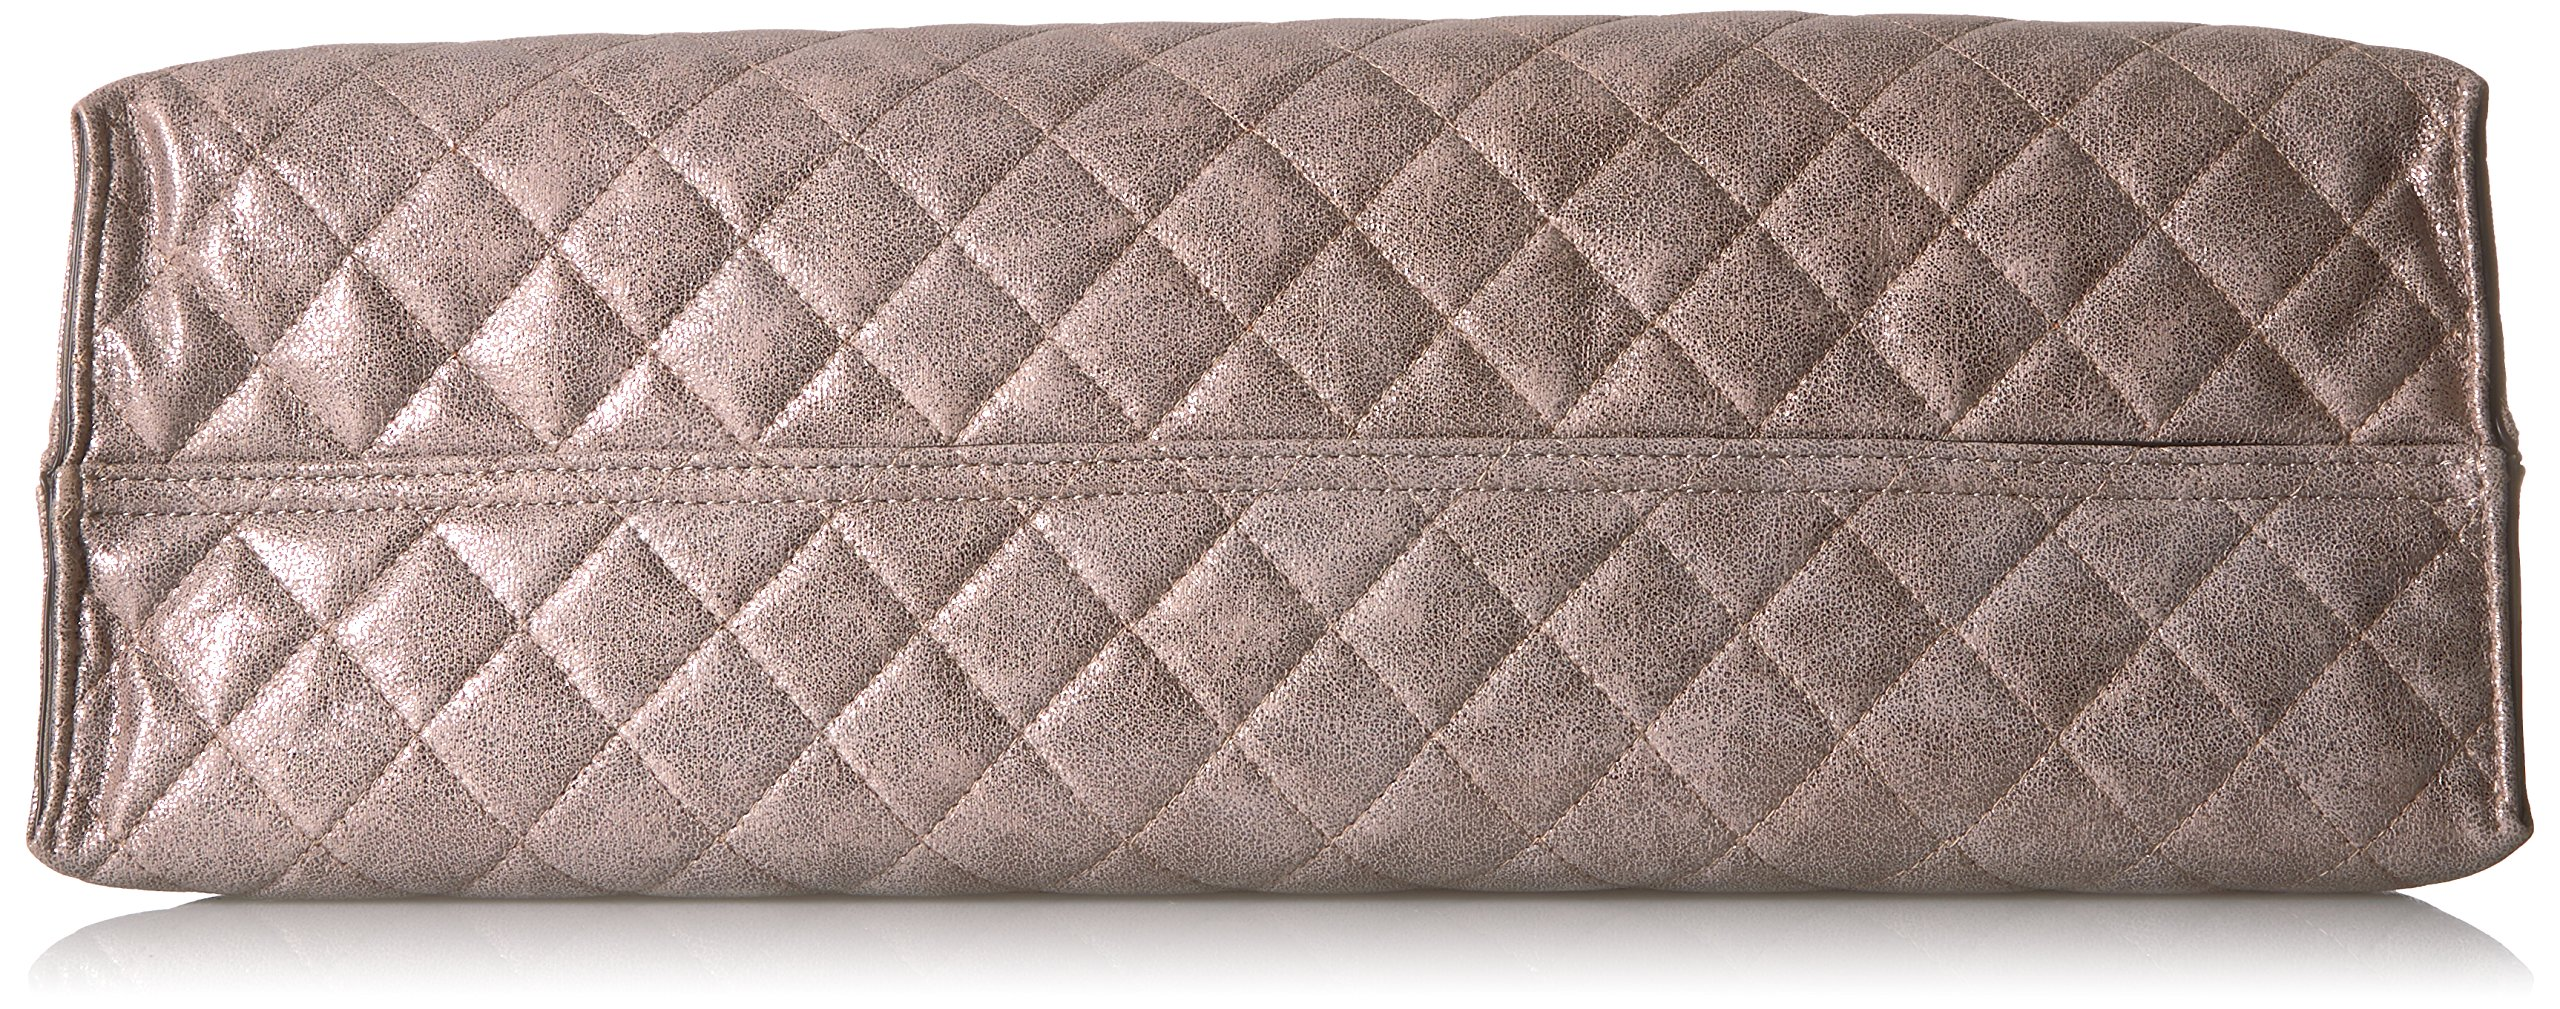 Calvin Klein Quilted Distressed Novelty Tote, Mtallic Taupe by Calvin Klein (Image #4)